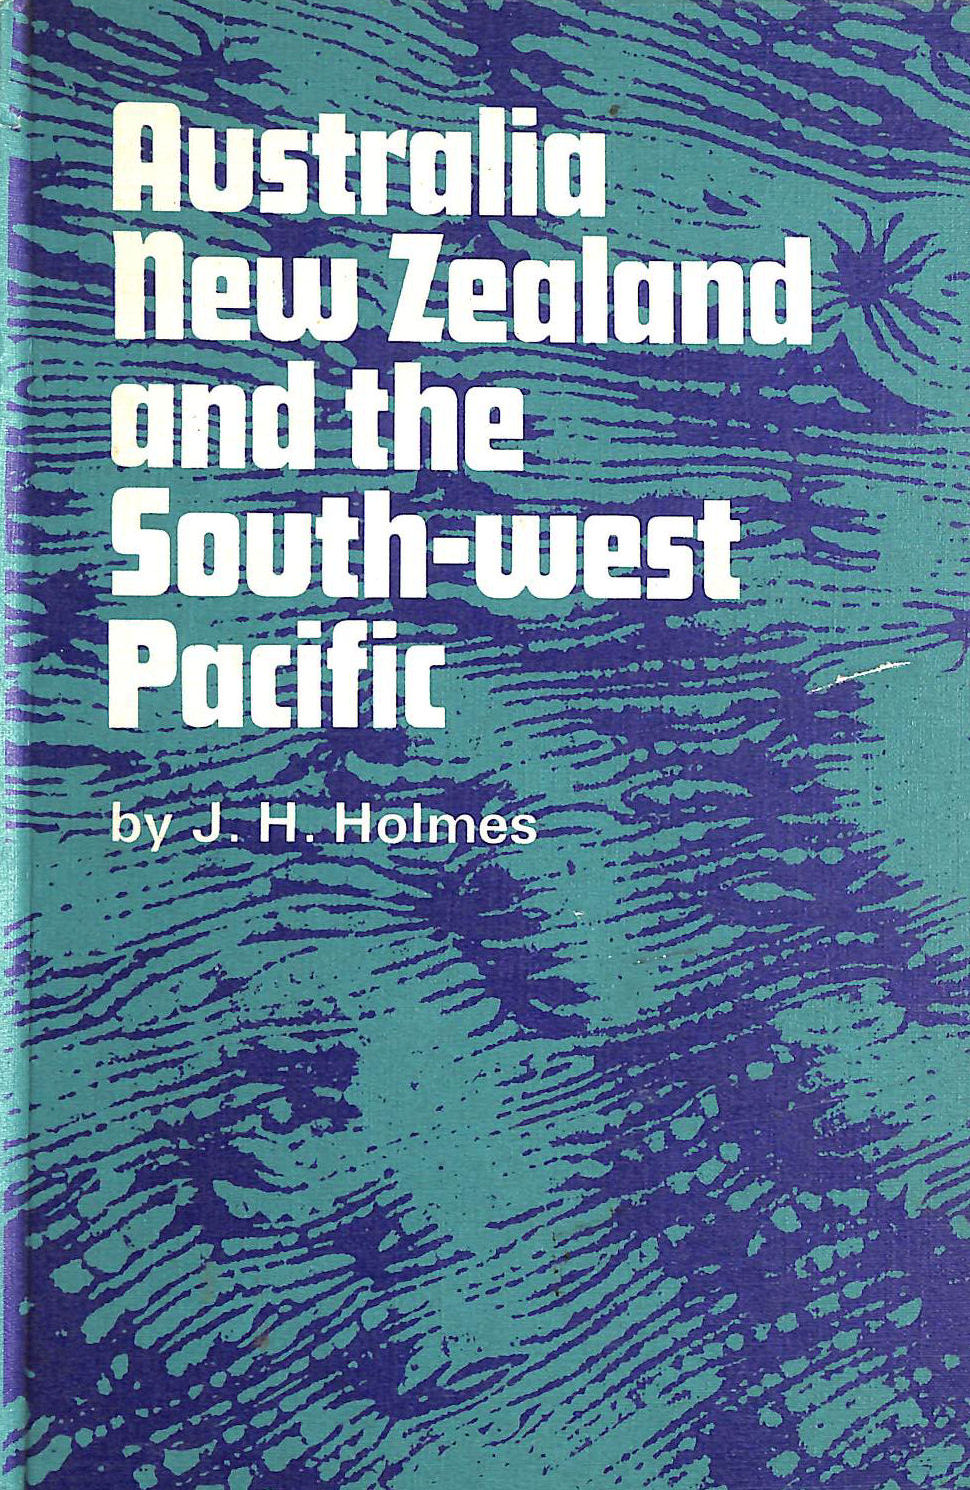 Image for Australia, New Zealand And The South West Pacific (Nelson's Geography Texts)